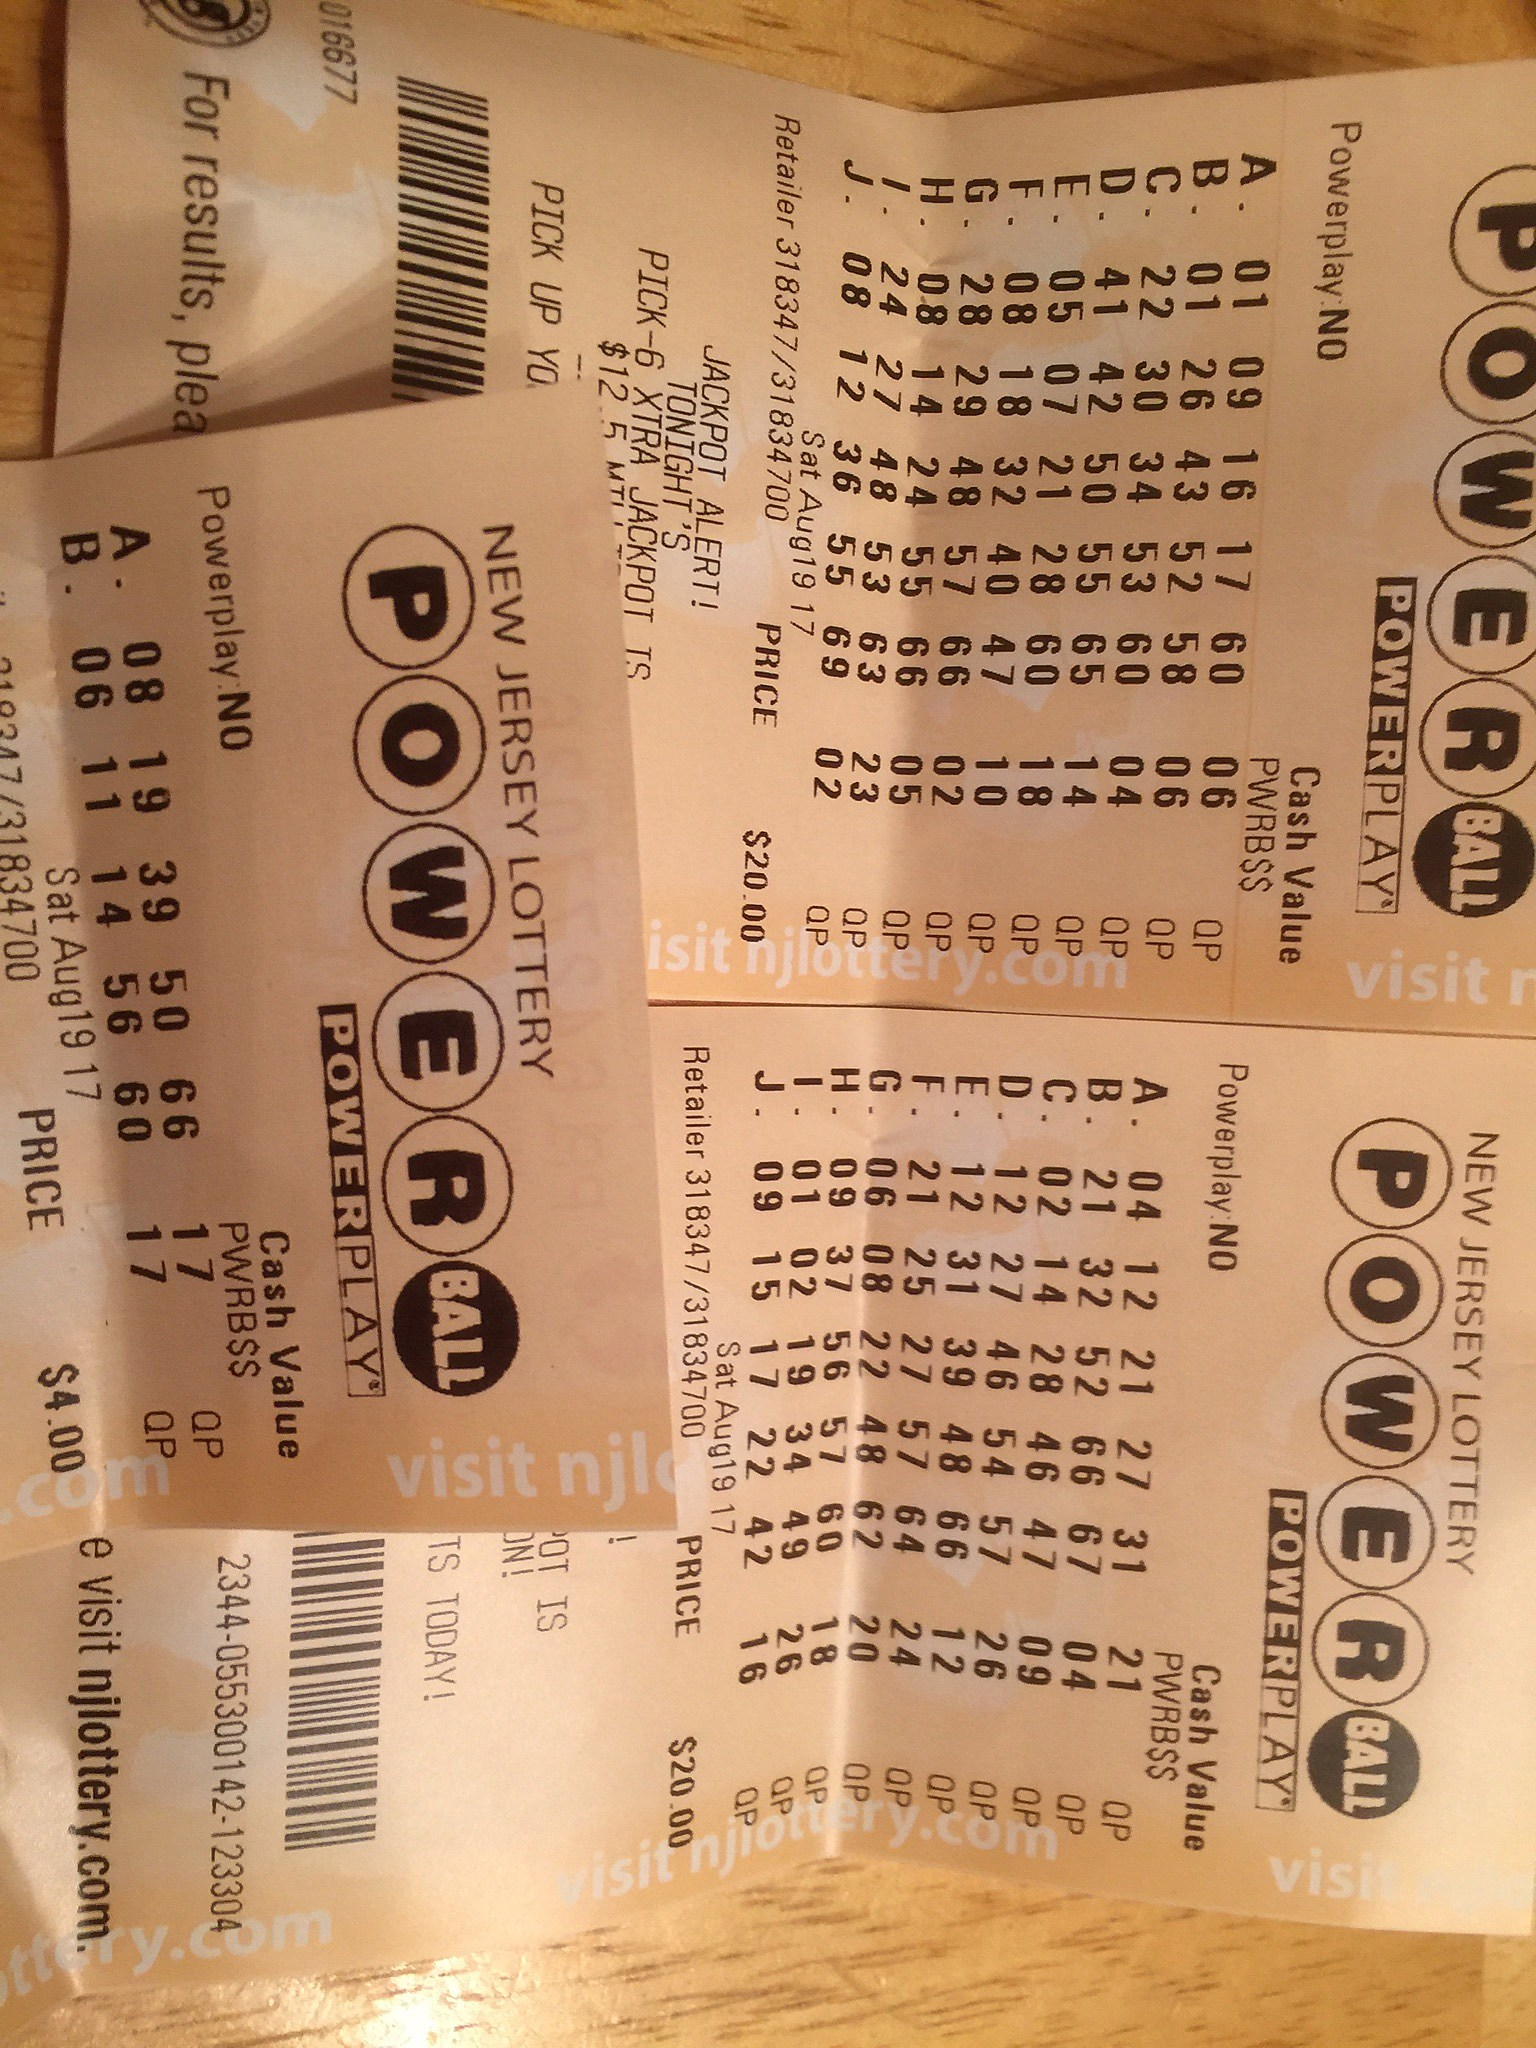 Powerball keeps growing: Jackpot now $650 million for Wednesday drawing